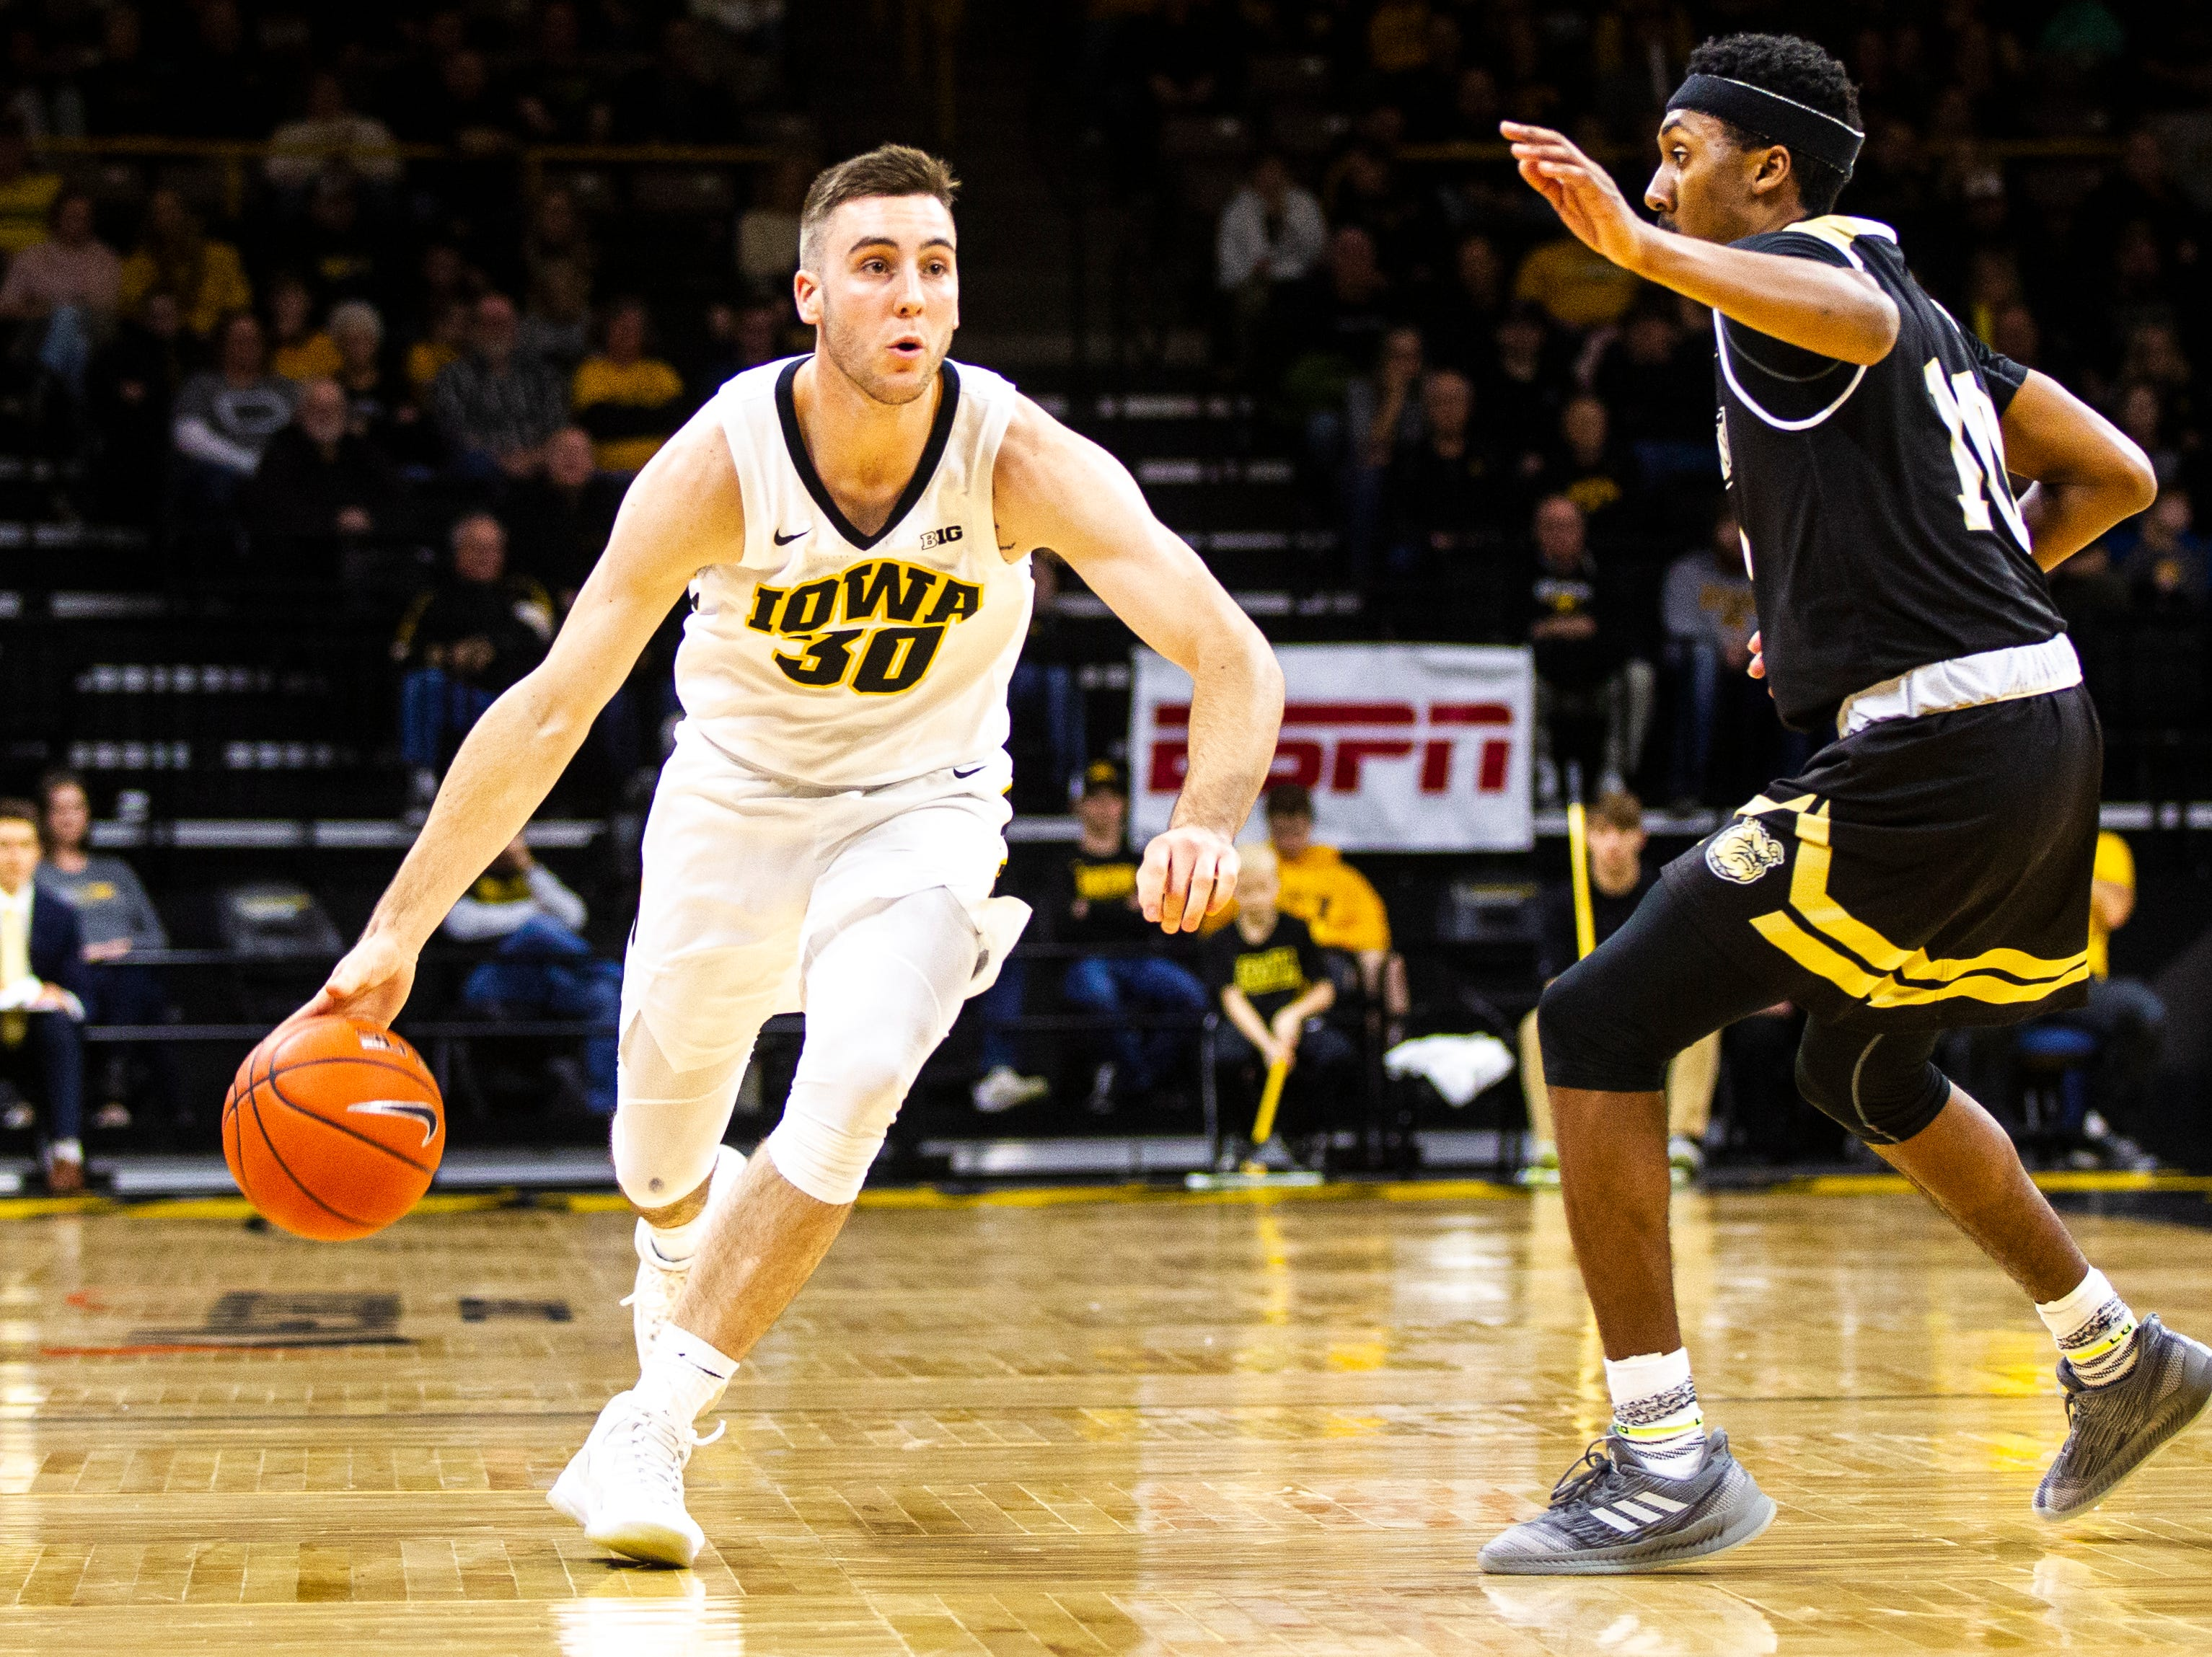 Iowa guard Connor McCaffery (30) drives to the hoop during a NCAA men's basketball game on Saturday, Dec. 29, 2018, at Carver-Hawkeye Arena in Iowa City.